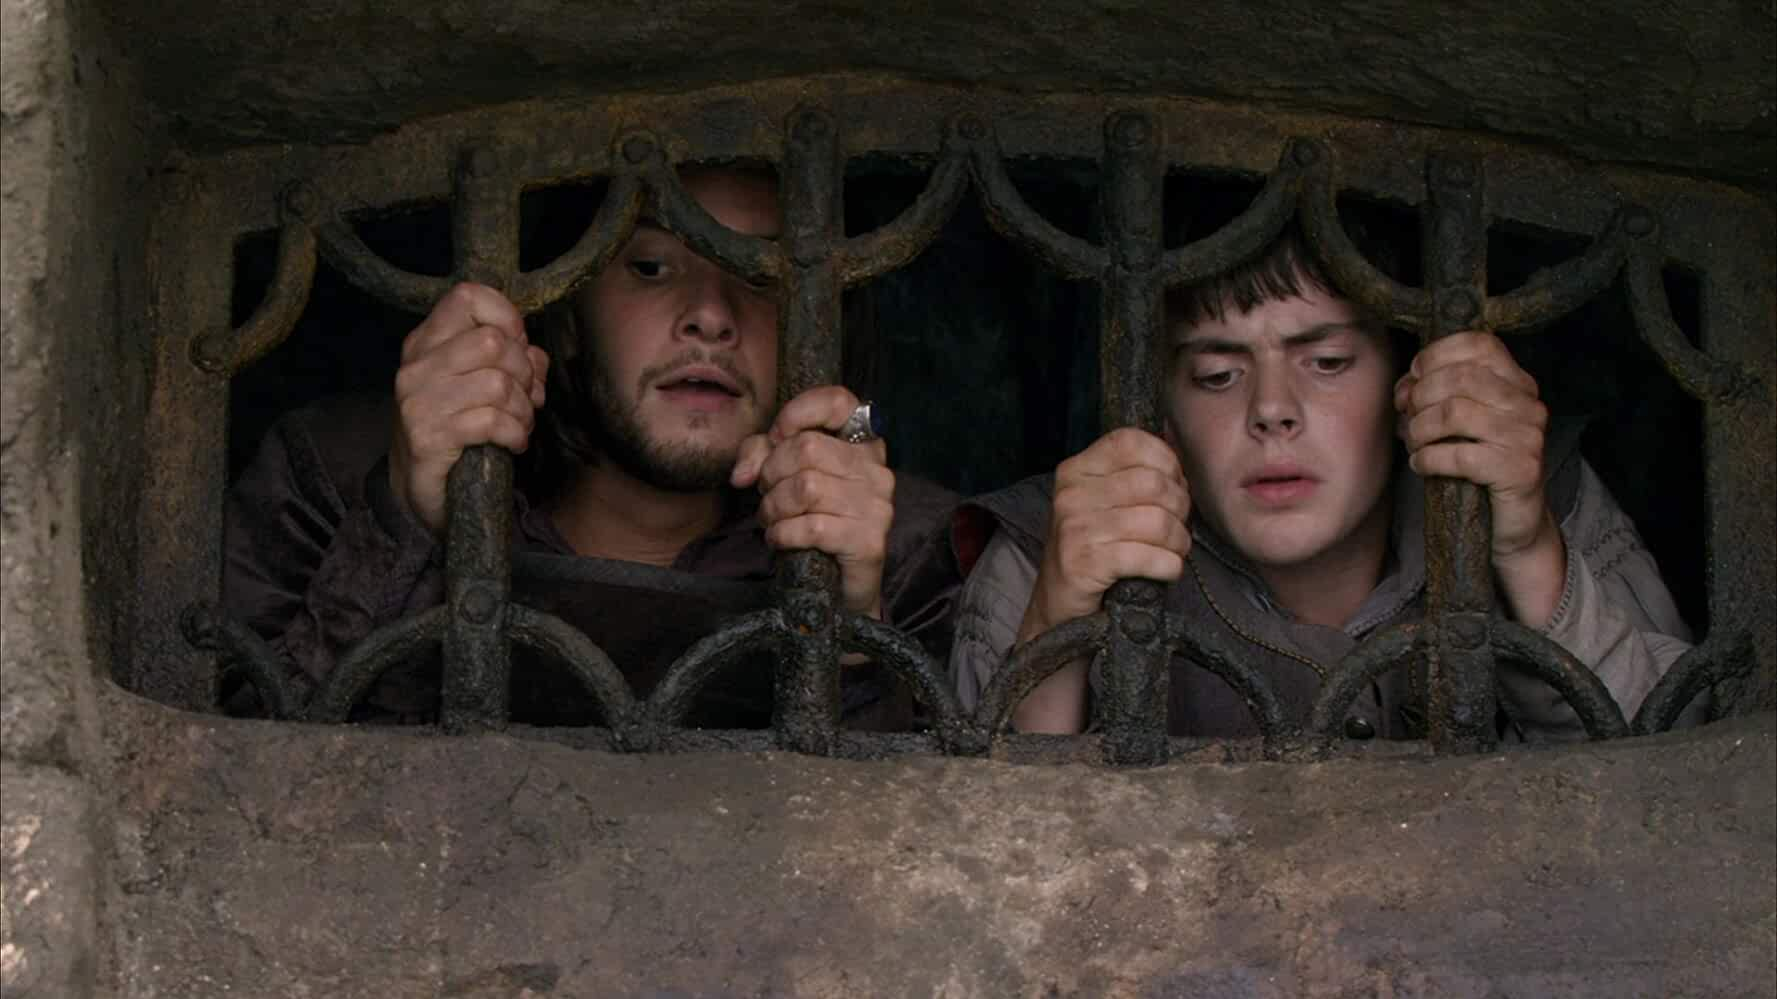 Skandar Keynes and Ben Barnes in The Chronicles of Narnia: The Voyage of the Dawn Treader (2010)